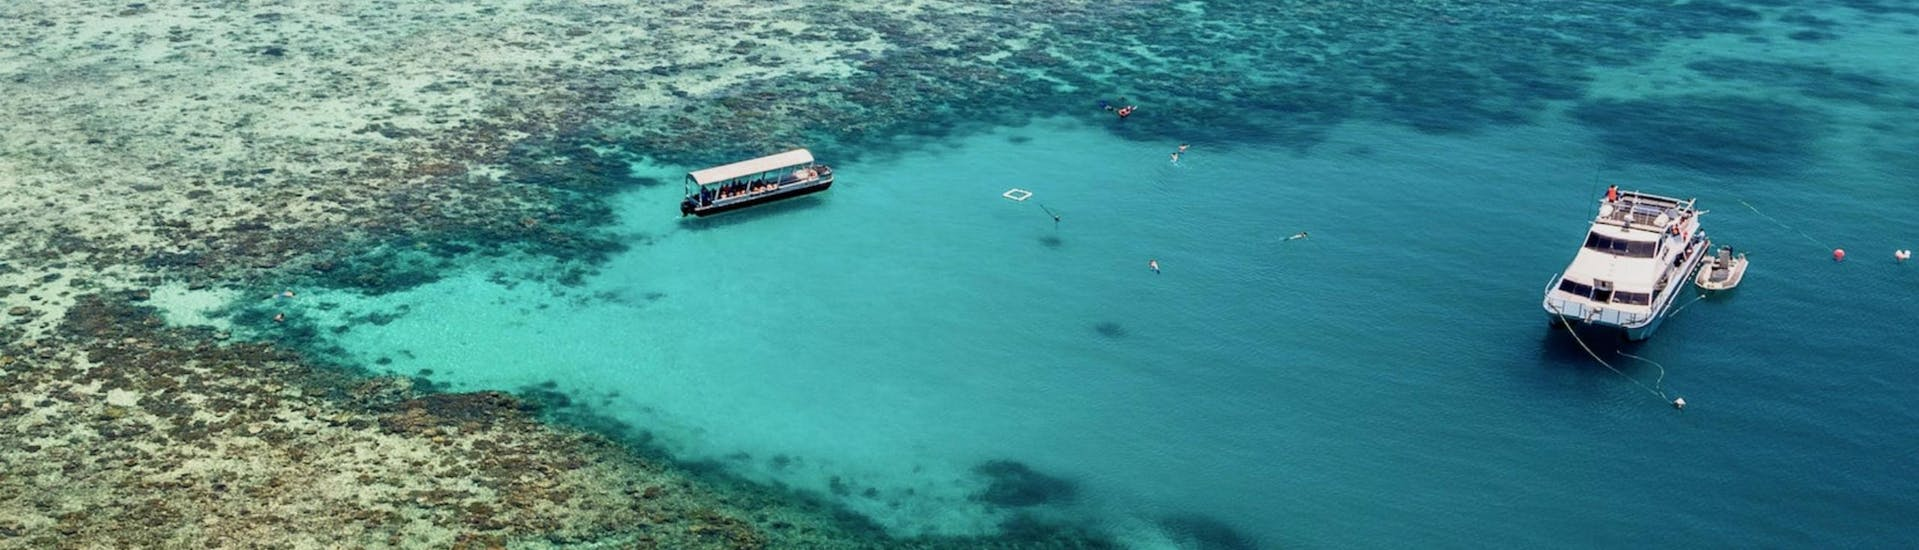 The Ocean Freedom catamaran is moored on theedge of Upolu Reef, where guests can go snorkeling during the Great Barrier Reef Cruise from Cairns.